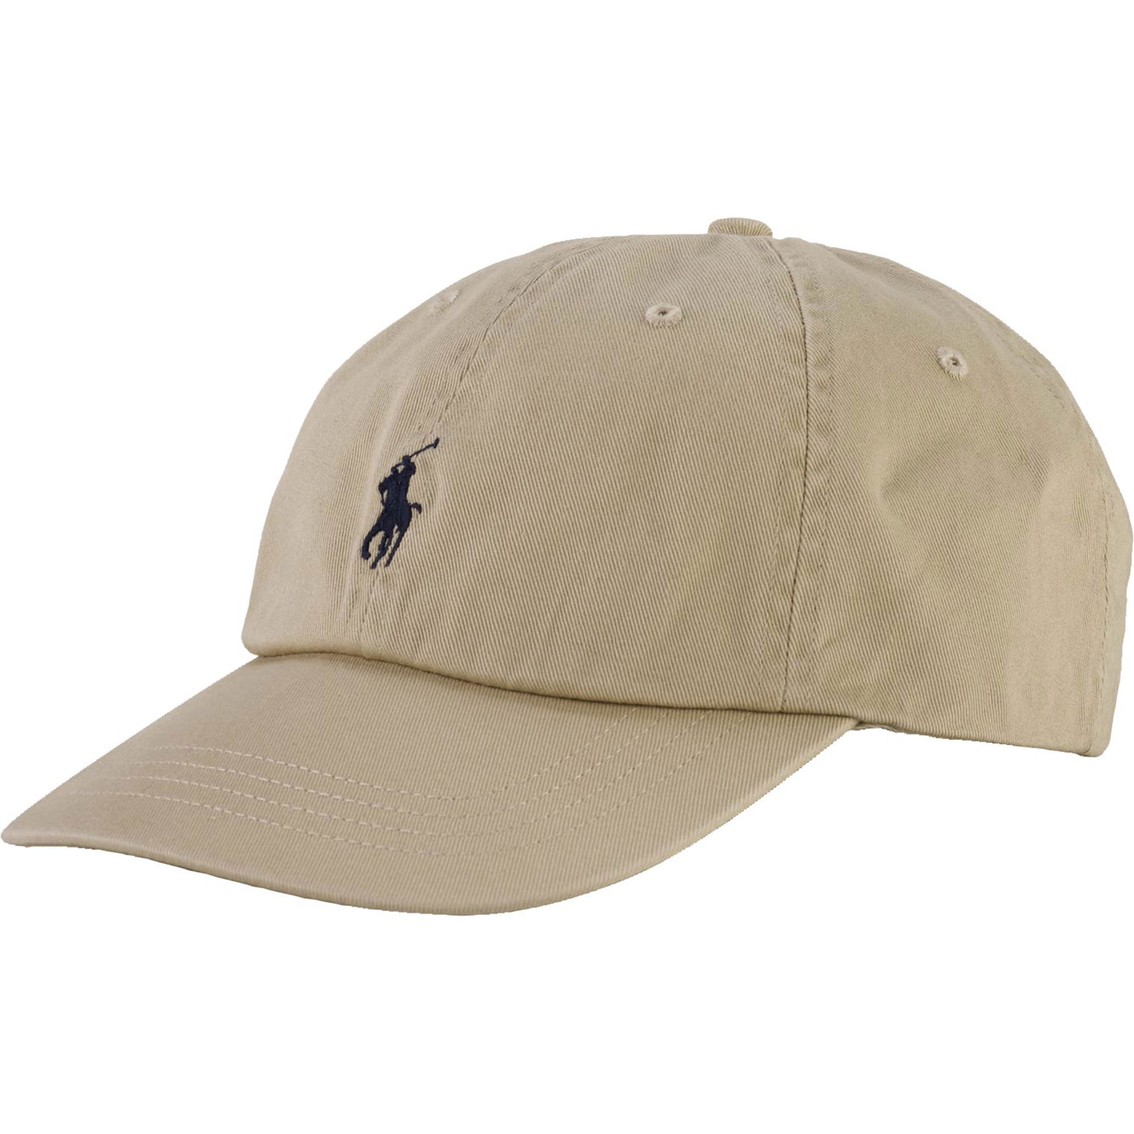 polo ralph lauren classic chino sports cap ball caps hats. Black Bedroom Furniture Sets. Home Design Ideas